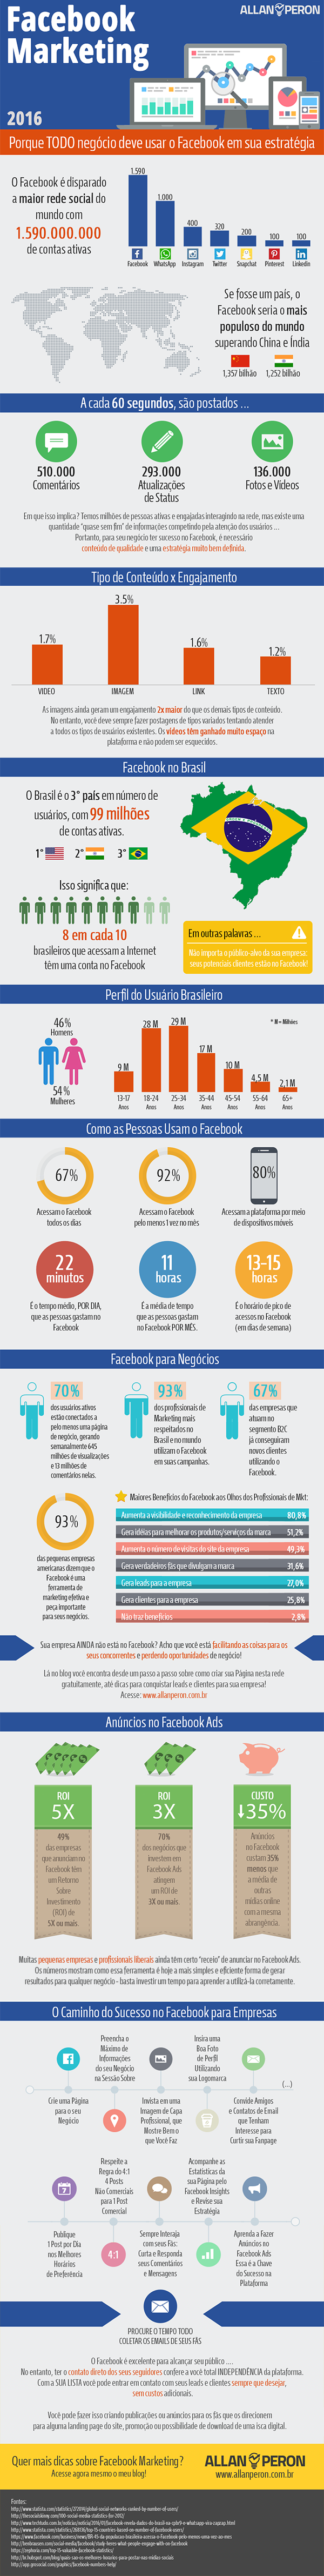 Infográfico Facebook Marketing 2016